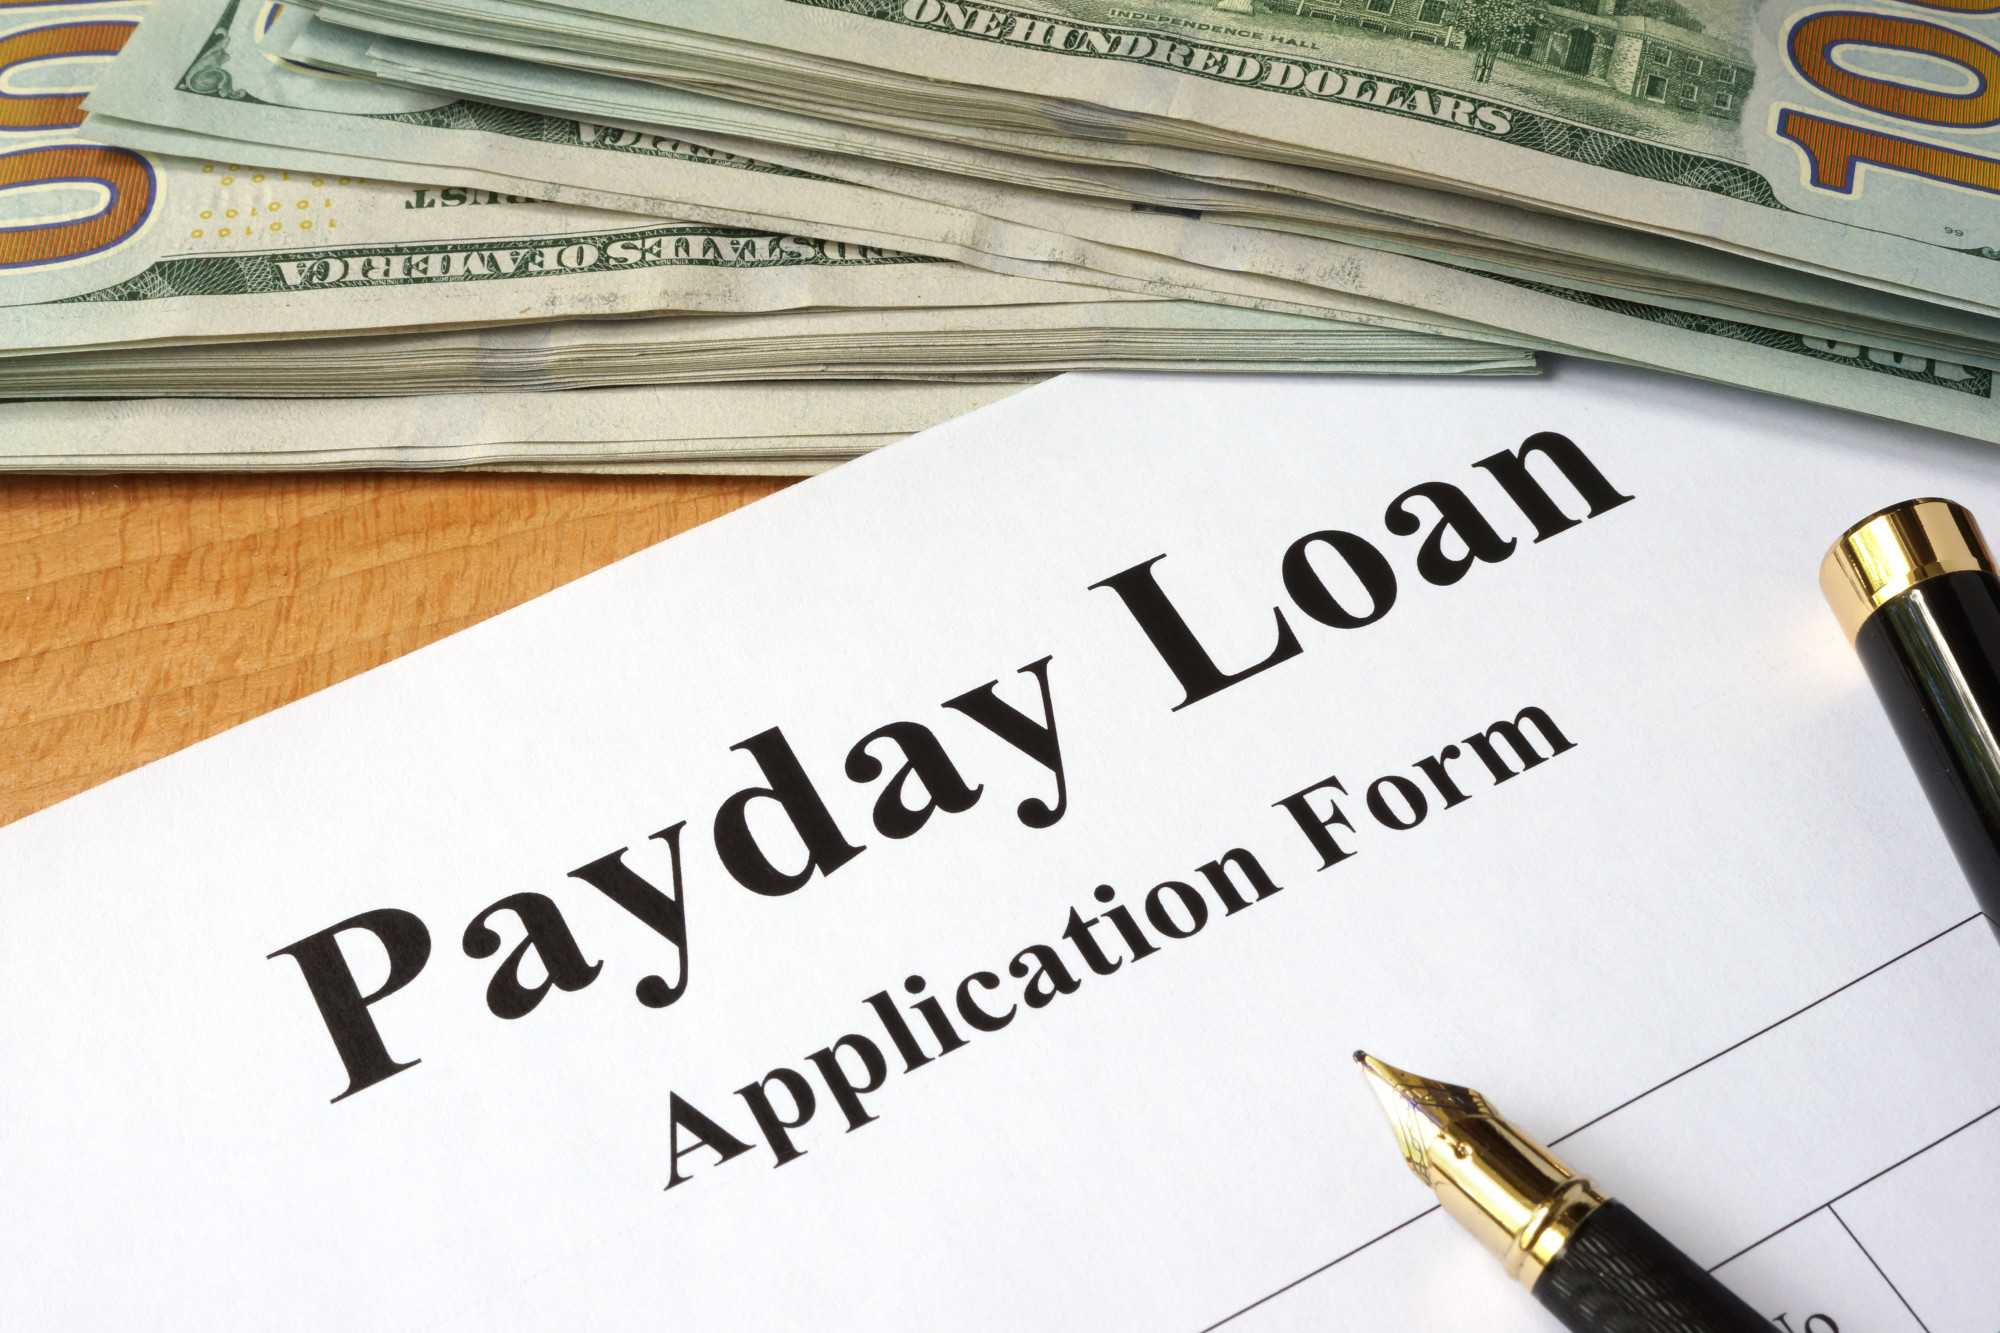 The New Payday Loan Rule of 2020 Hurts Consumers